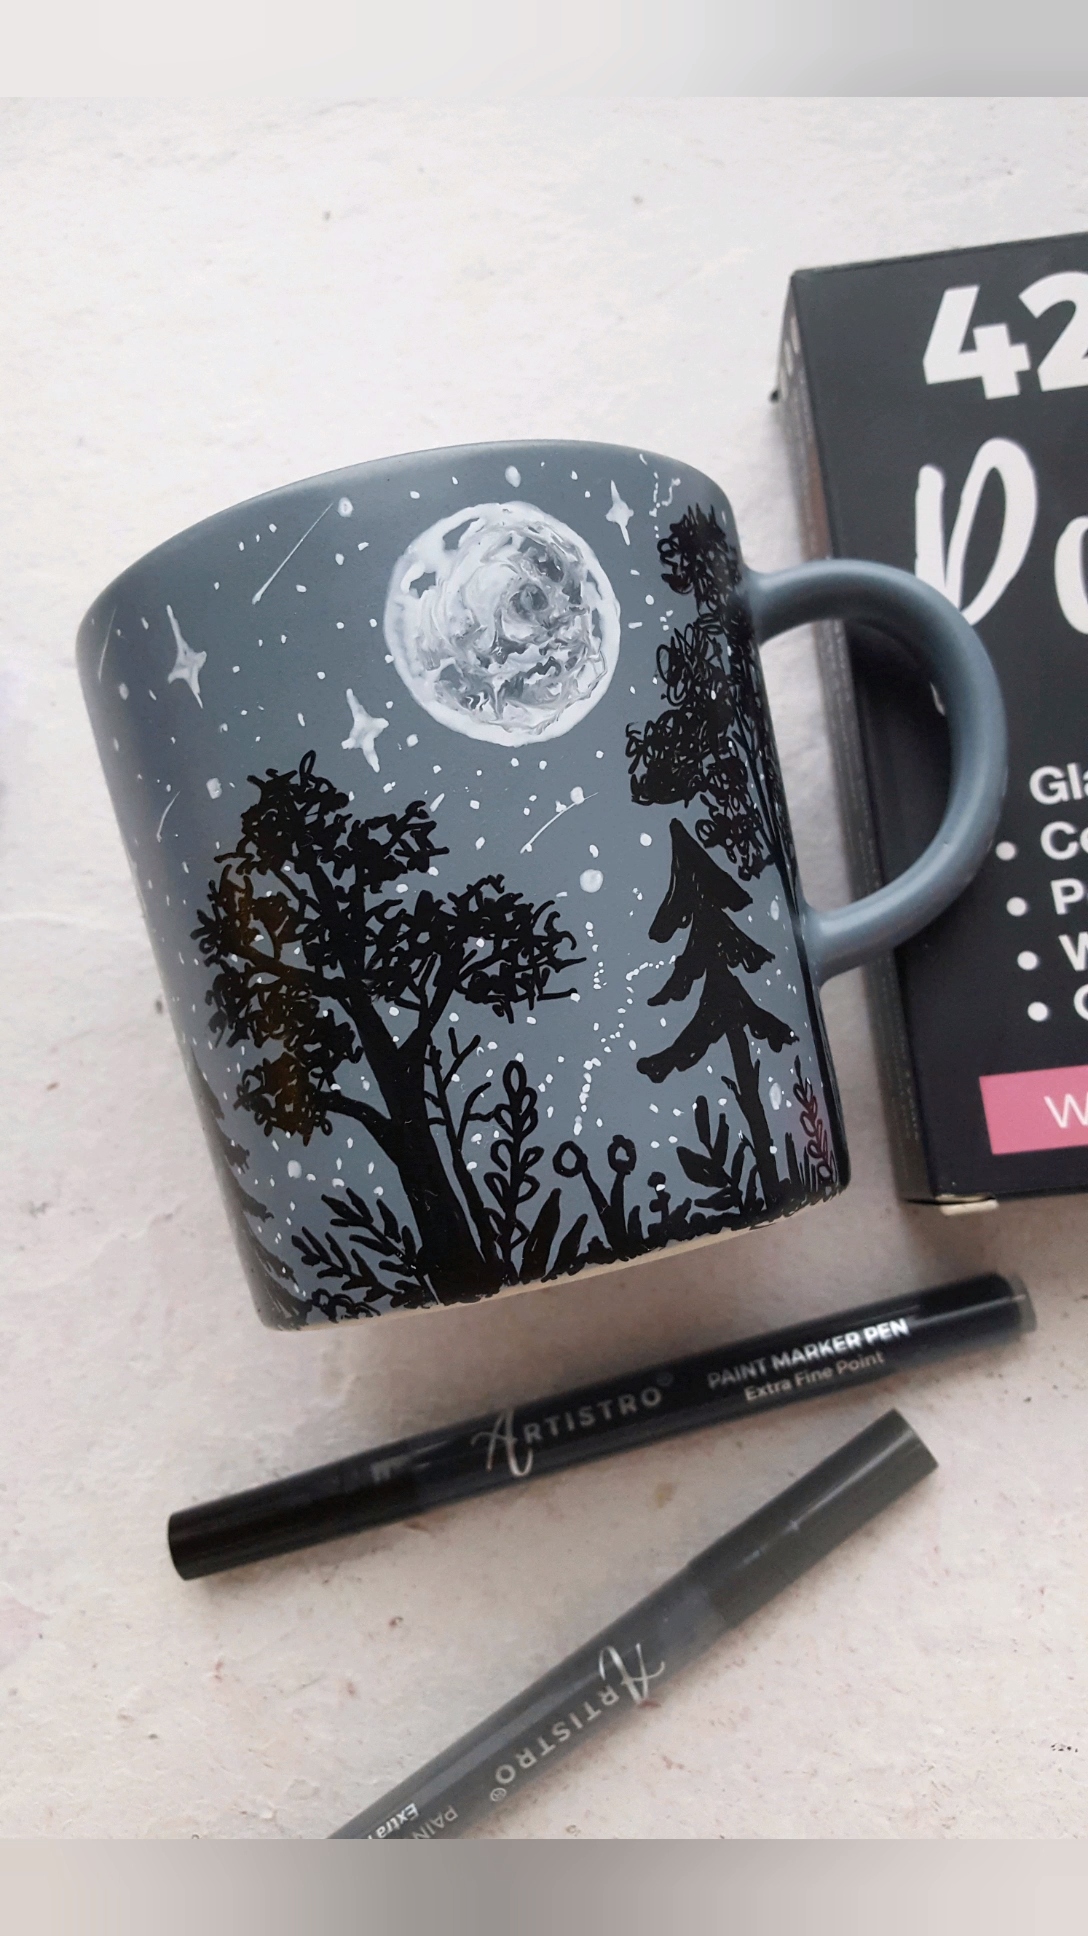 Moon painted mug